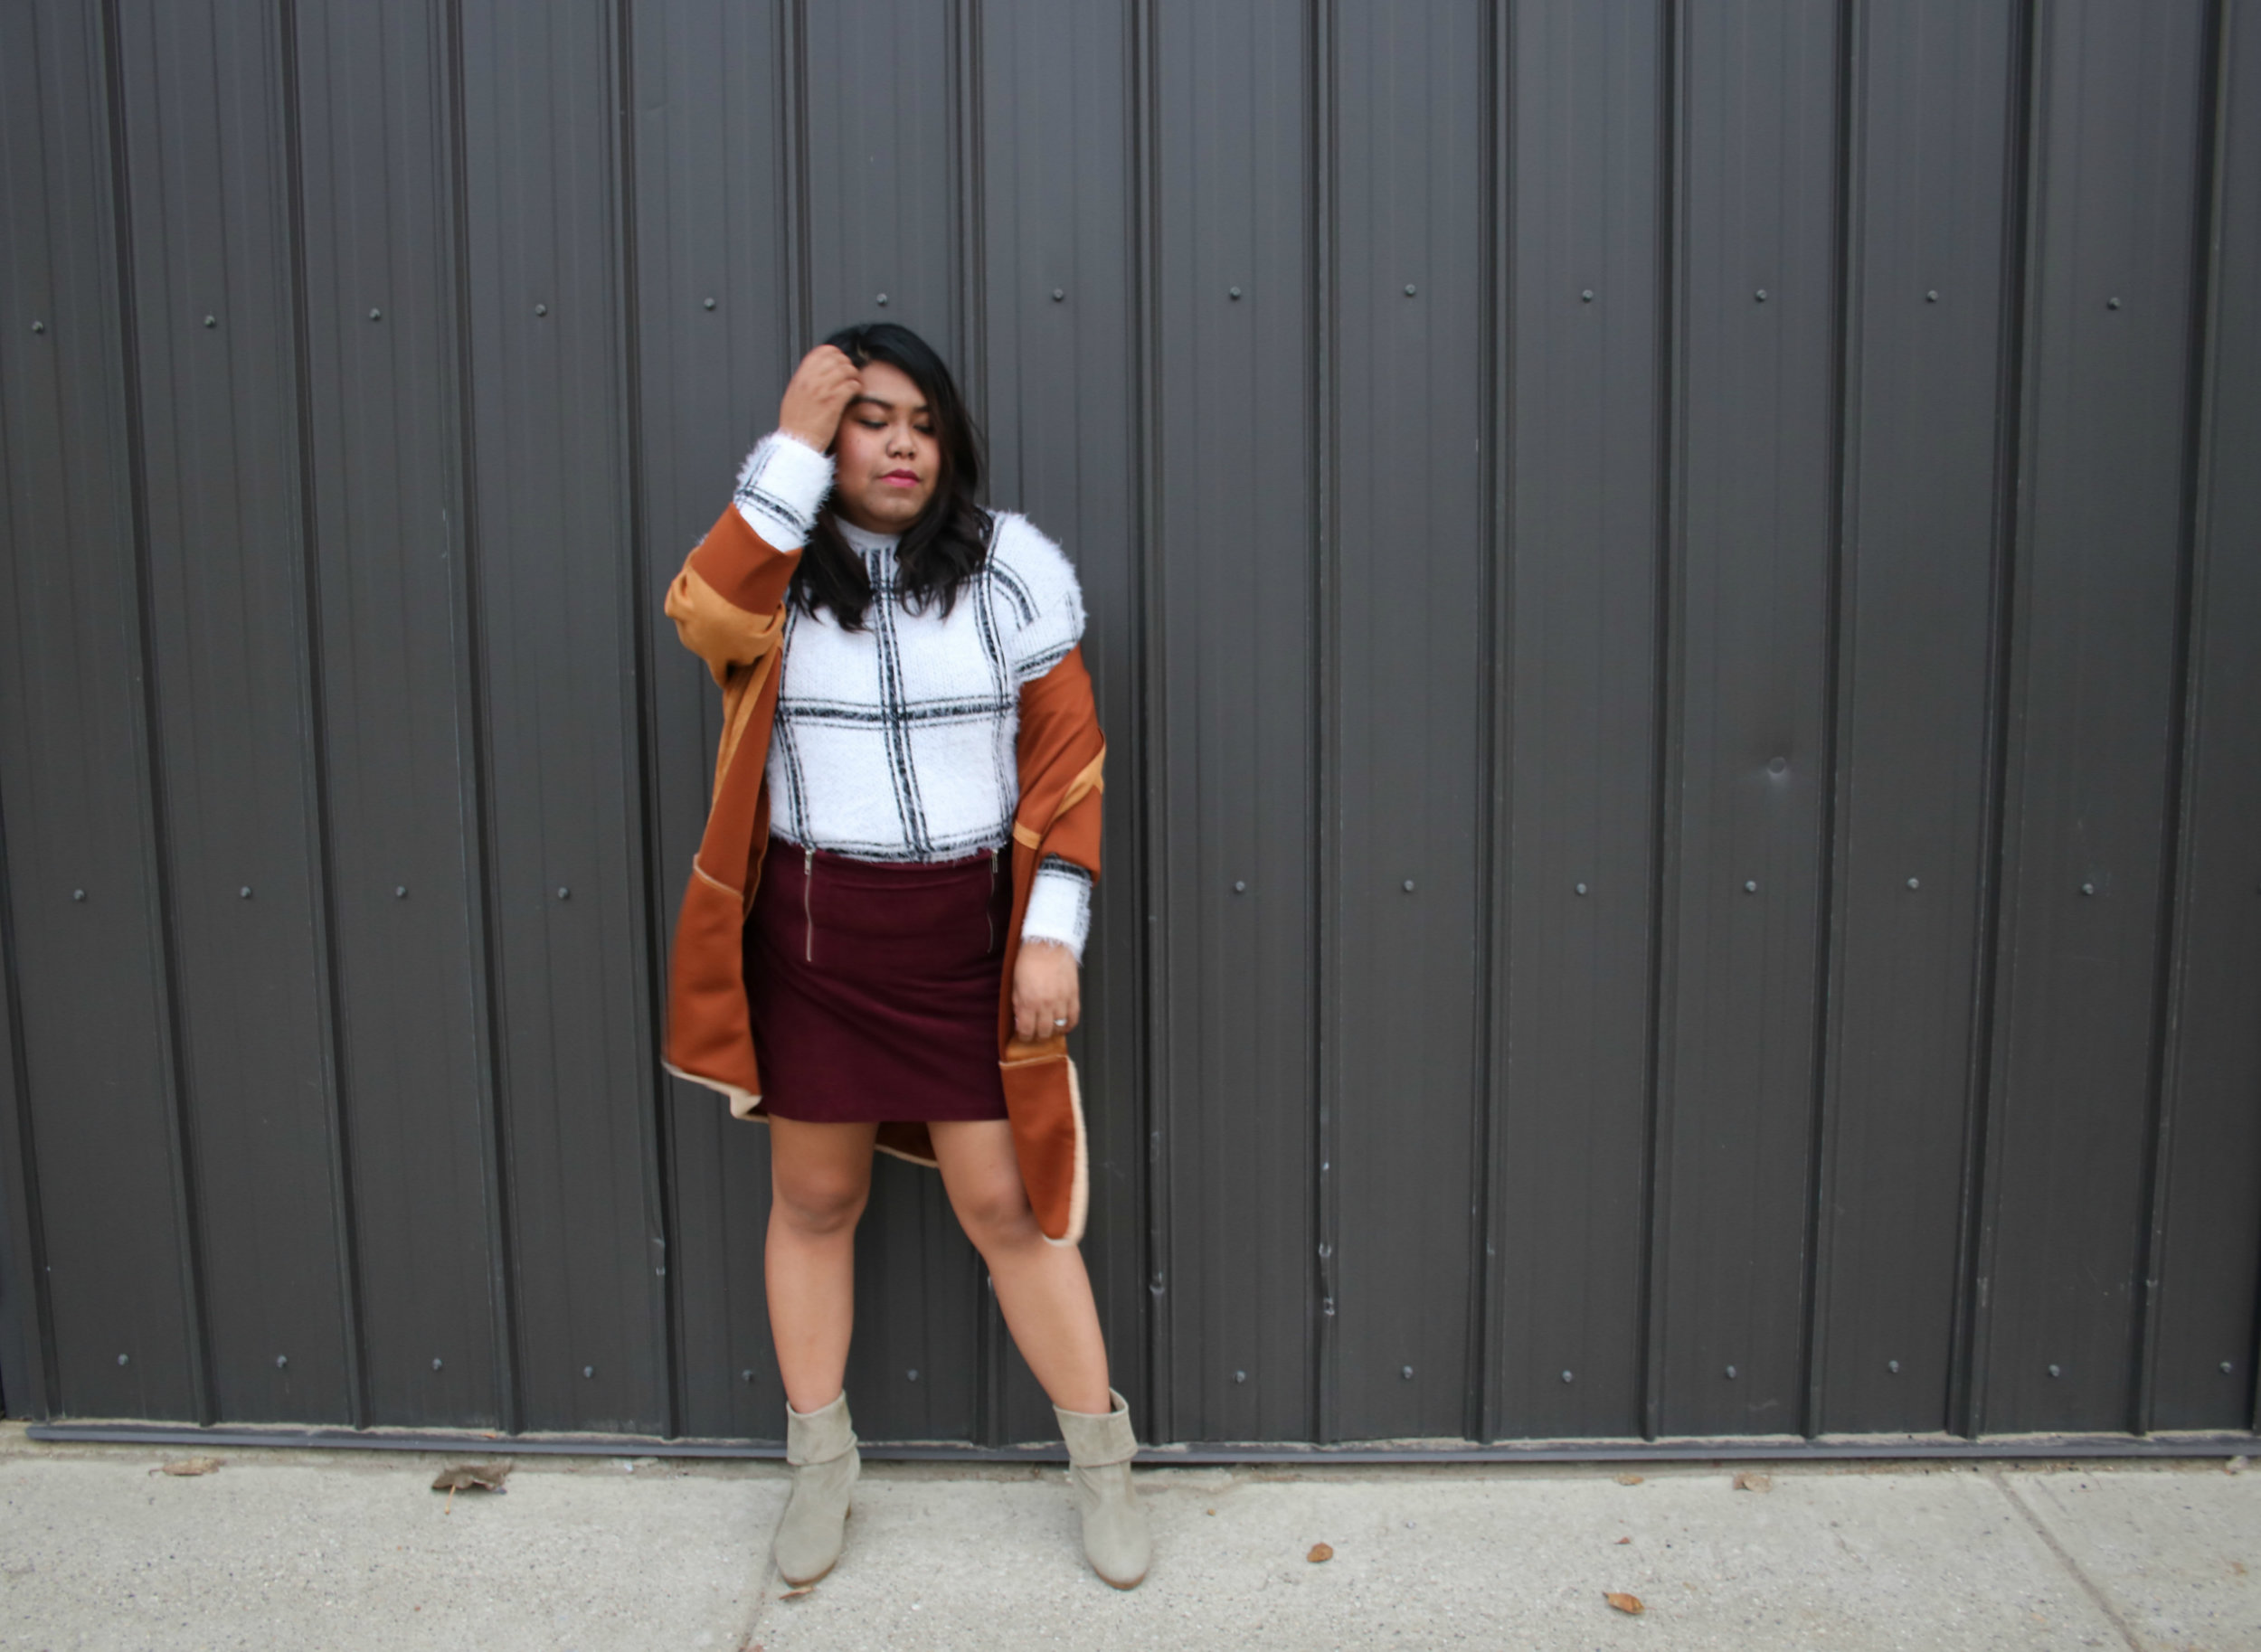 how to wear suede skirt, why wear suede skirt, easy ways to wear suede skirt, suede skirt for fall, red suede skirt, fall outfit ideas, casual suede skirt, casual fall outfit, casual suede skirt outfit, why you need a suede skirt, suede skirt fashion, suede skirt trend, ways to wear suede skirt, wear a suede skirt, why wear suede, how to wear suede